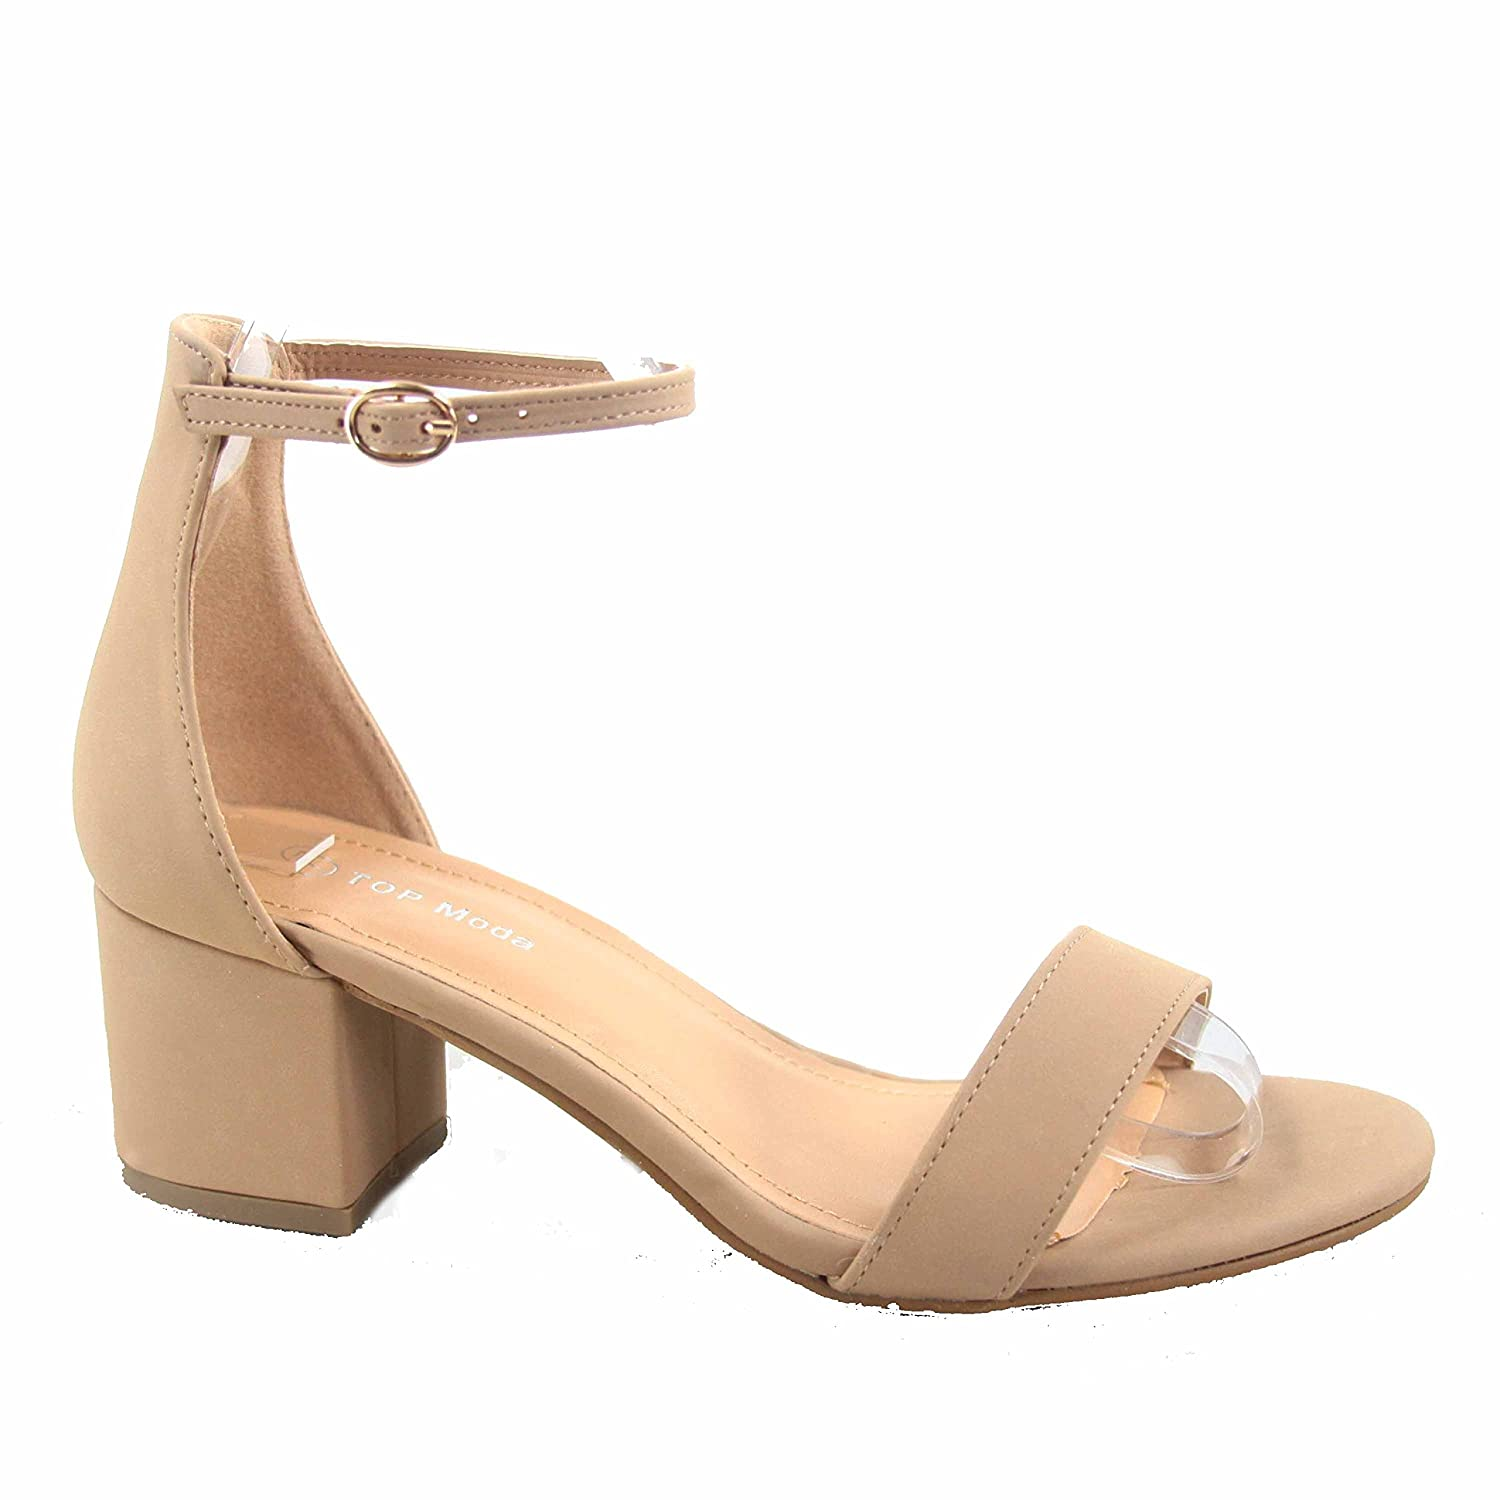 9049314a9fc Top Moda Darcie-1 Women's Fashion Ankle Strap Chunky Low Heel Dress Sandal  Shoes Taupe